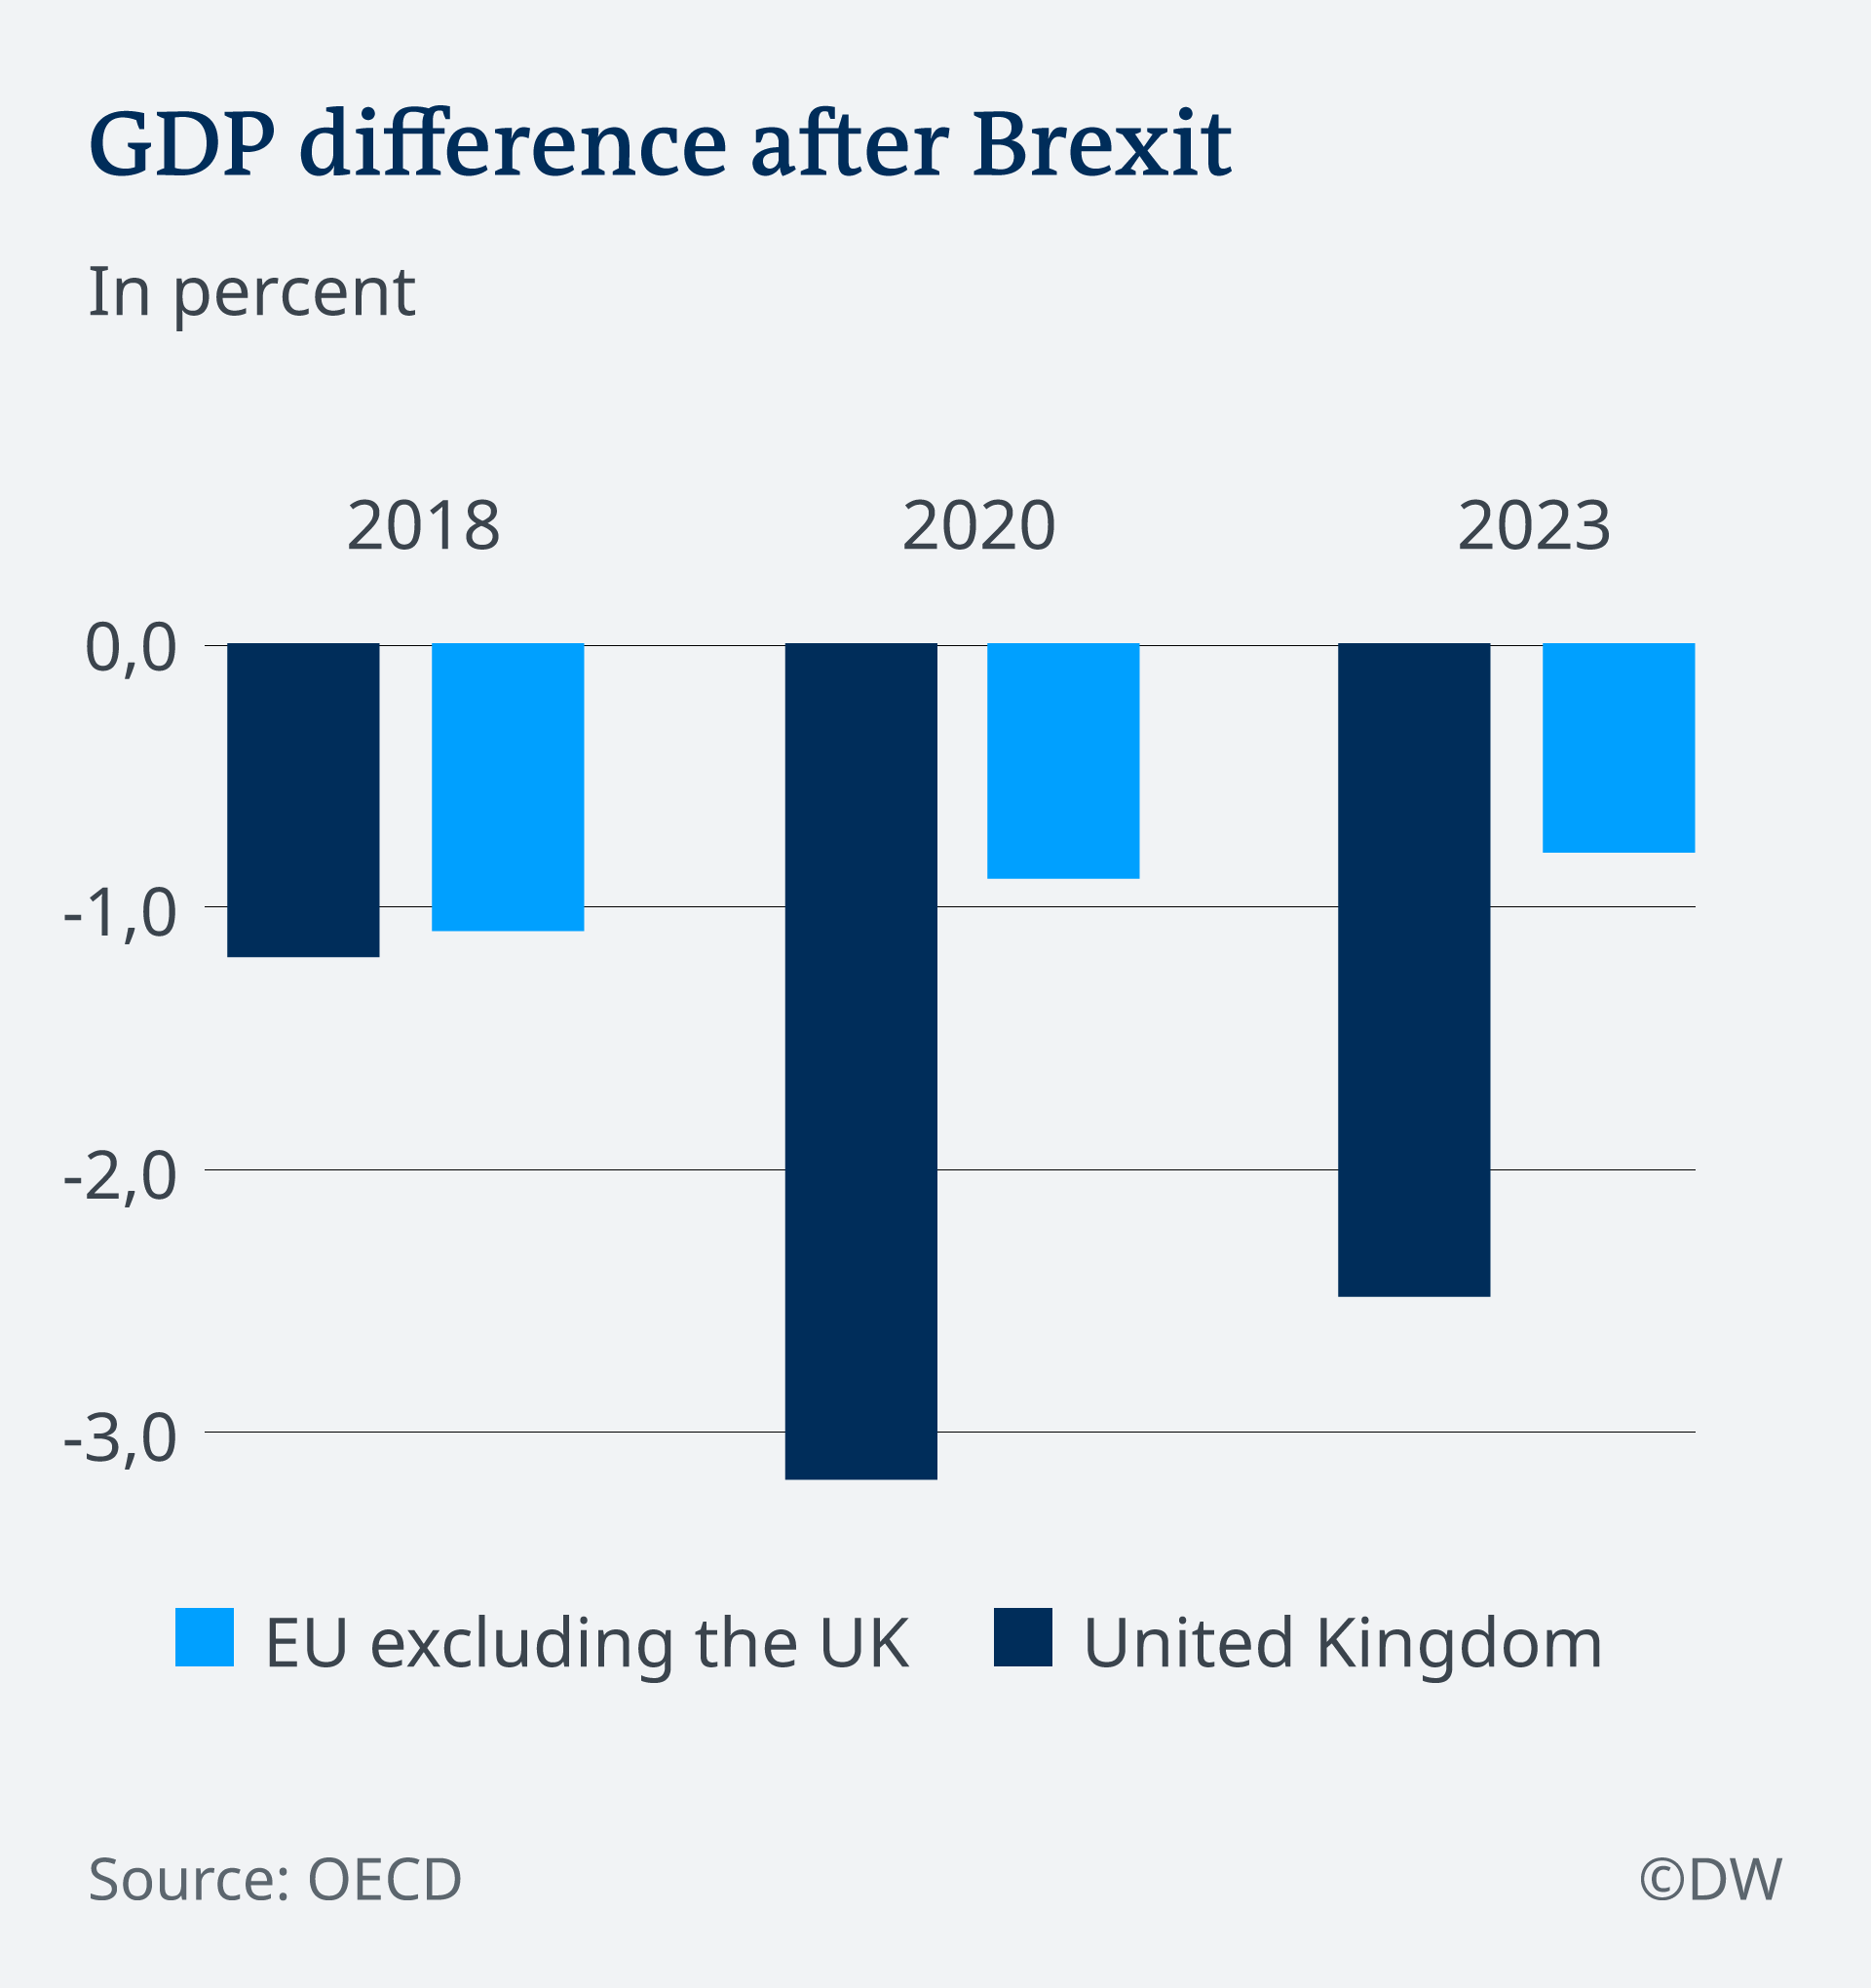 GDP after Brexit